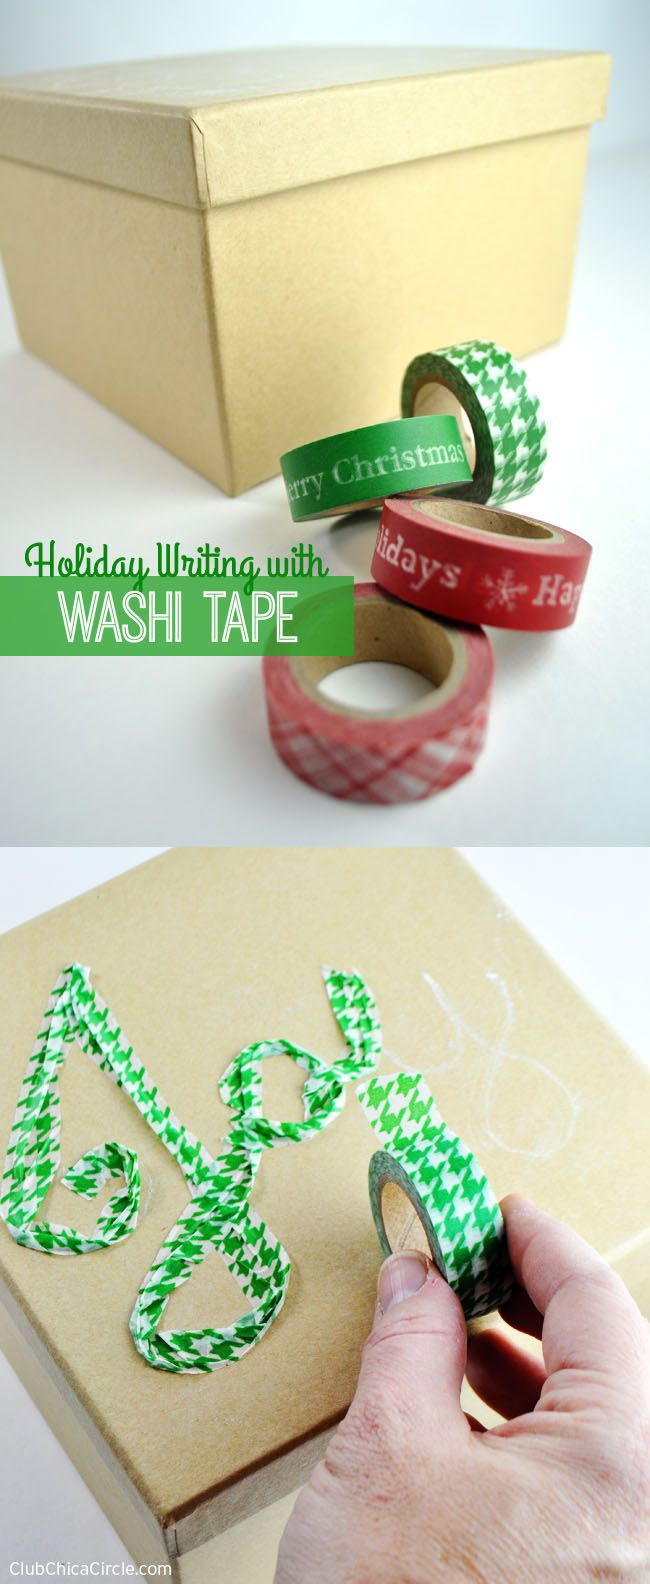 1137 best images about tween craft ideas on pinterest for Holiday crafts for tweens